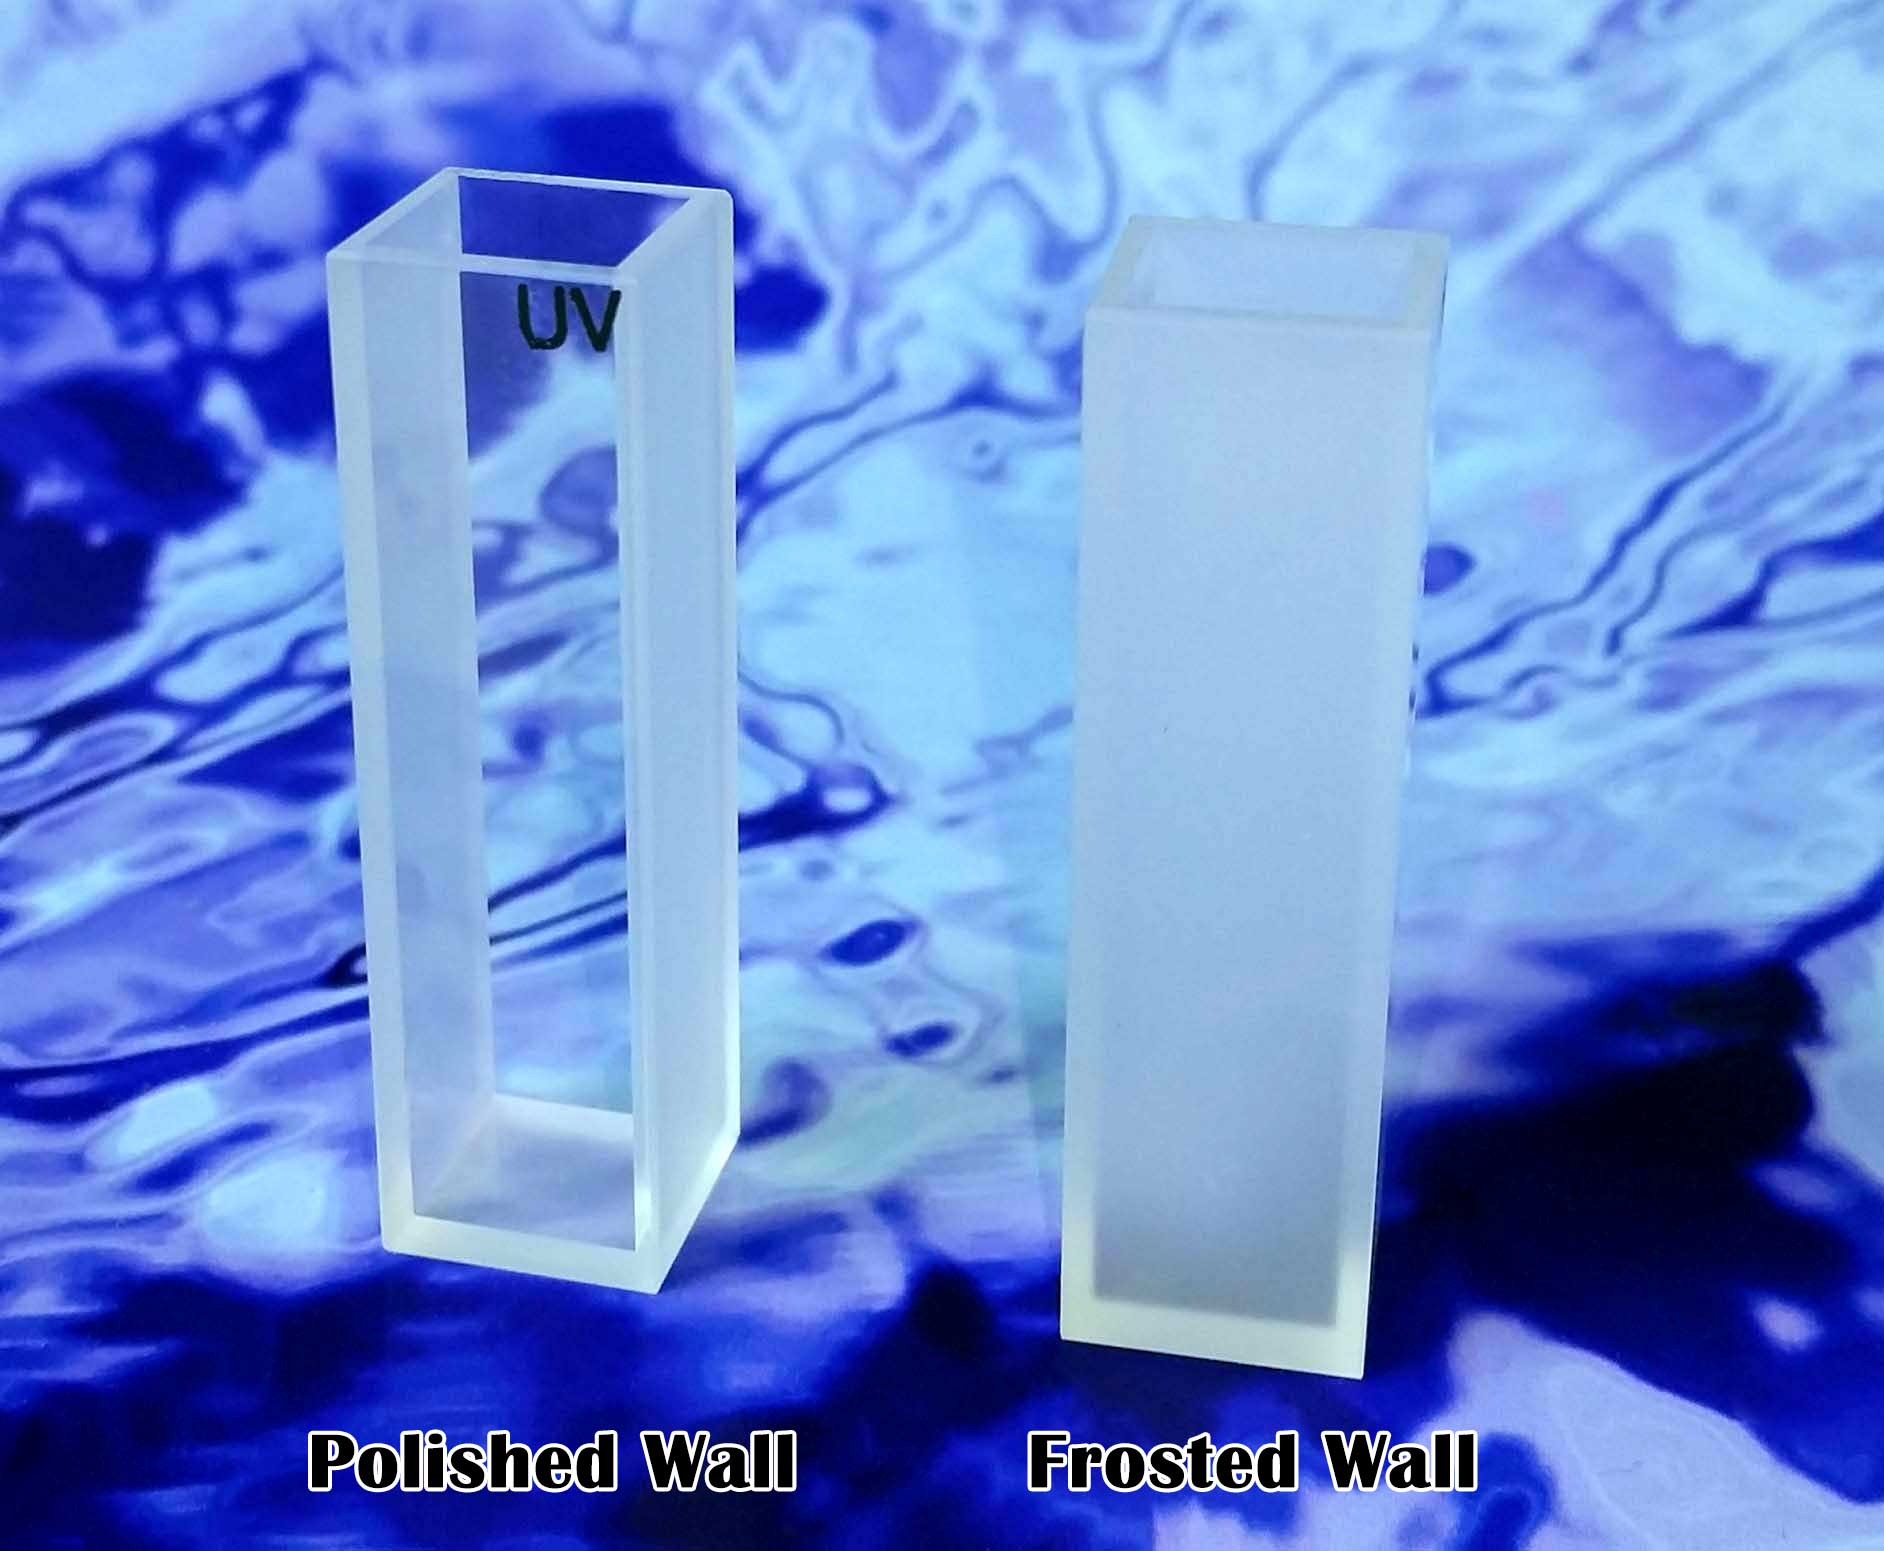 Polished vs frosted walls